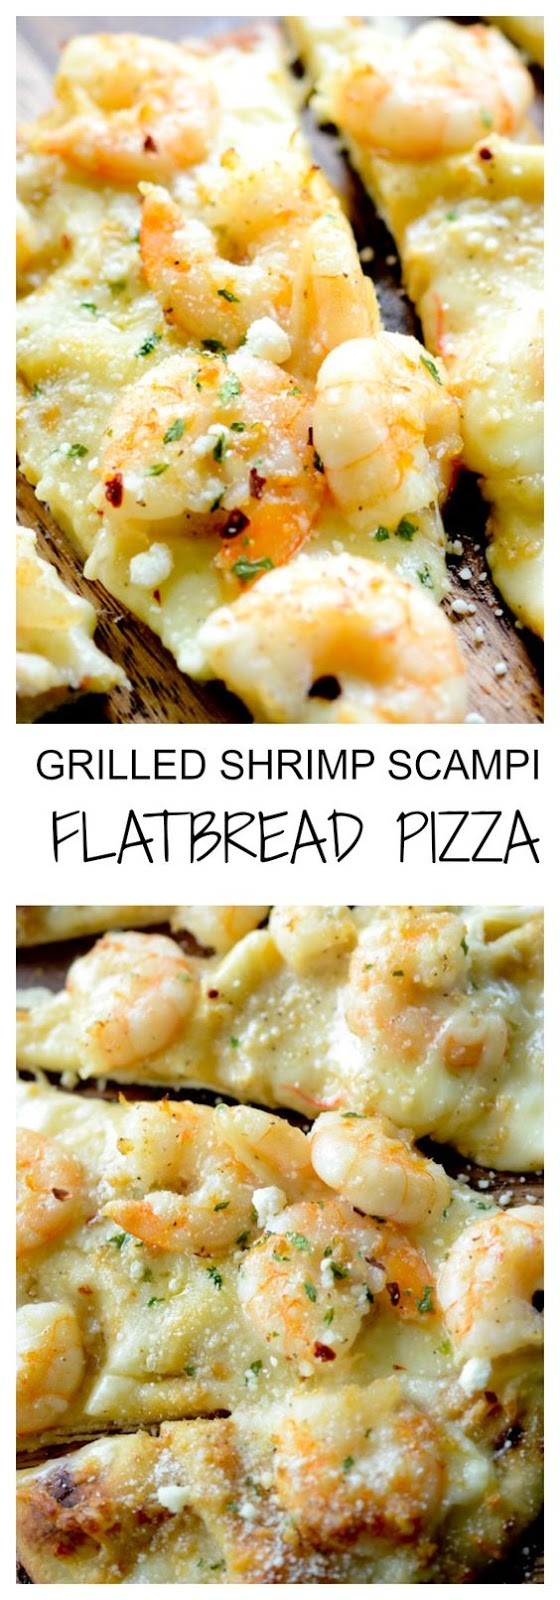 ★★★★☆ 2311 ratings ⋅ GRILLED SHRIMP SCAMPI FLATBREAD PIZZA  #DESSERTS #HEALTHYFOOD #EASYRECIPES #DINNER #LAUCH #DELICIOUS #EASY #HOLIDAYS #RECIPE #SPECIALDIET #WORLDCUISINE #CAKE #APPETIZERS #HEALTHYRECIPES #DRINKS #COOKINGMETHOD #ITALIANRECIPES #MEAT #VEGANRECIPES #COOKIES #PASTA #FRUIT #SALAD #SOUPAPPETIZERS #NONALCOHOLICDRINKS #MEALPLANNING #VEGETABLES #SOUP #PASTRY #CHOCOLATE #DAIRY #ALCOHOLICDRINKS #BULGURSALAD #BAKING #SNACKS #BEEFRECIPES #MEATAPPETIZERS #MEXICANRECIPES #BREAD #ASIANRECIPES #SEAFOODAPPETIZERS #MUFFINS #BREAKFASTANDBRUNCH #CONDIMENTS #CUPCAKES #CHEESE #CHICKENRECIPES #PIE #COFFEE #NOBAKEDESSERTS #HEALTHYSNACKS #SEAFOOD #GRAIN #LUNCHESDINNERS #MEXICAN #QUICKBREAD #LIQUOR